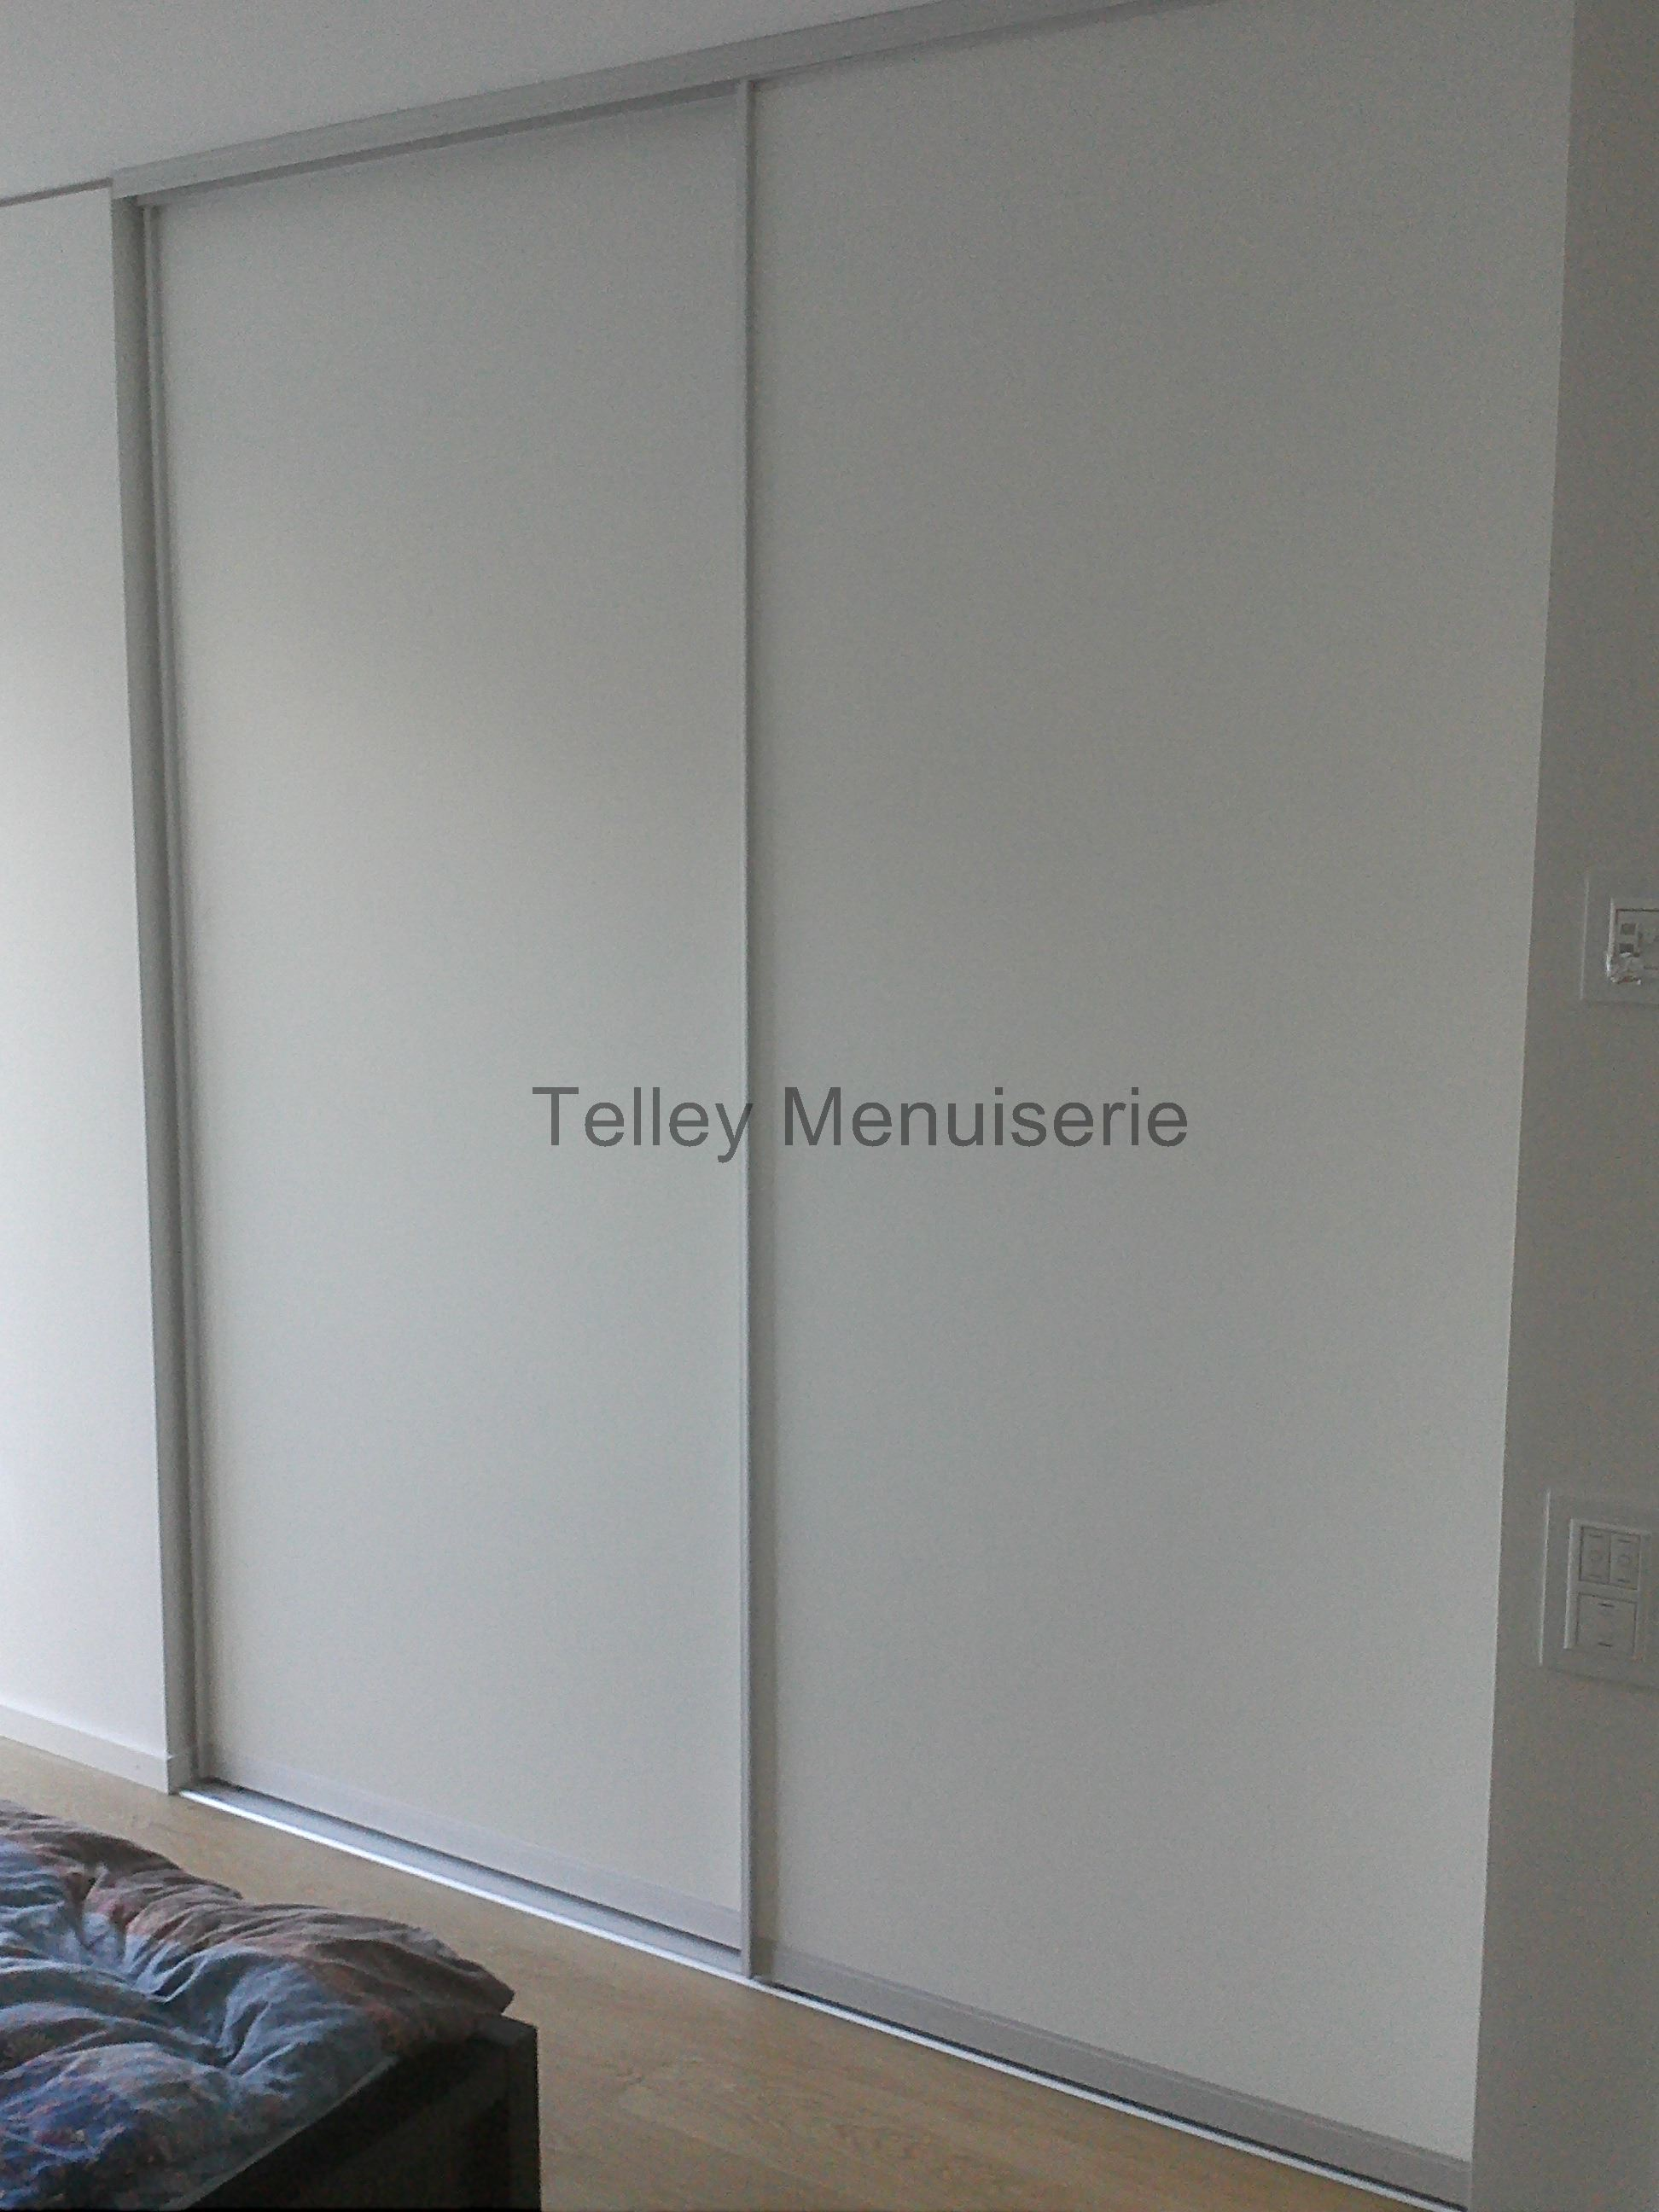 agencement int rieure armoire dressing sur mesure telley 103 menuiserie telley. Black Bedroom Furniture Sets. Home Design Ideas